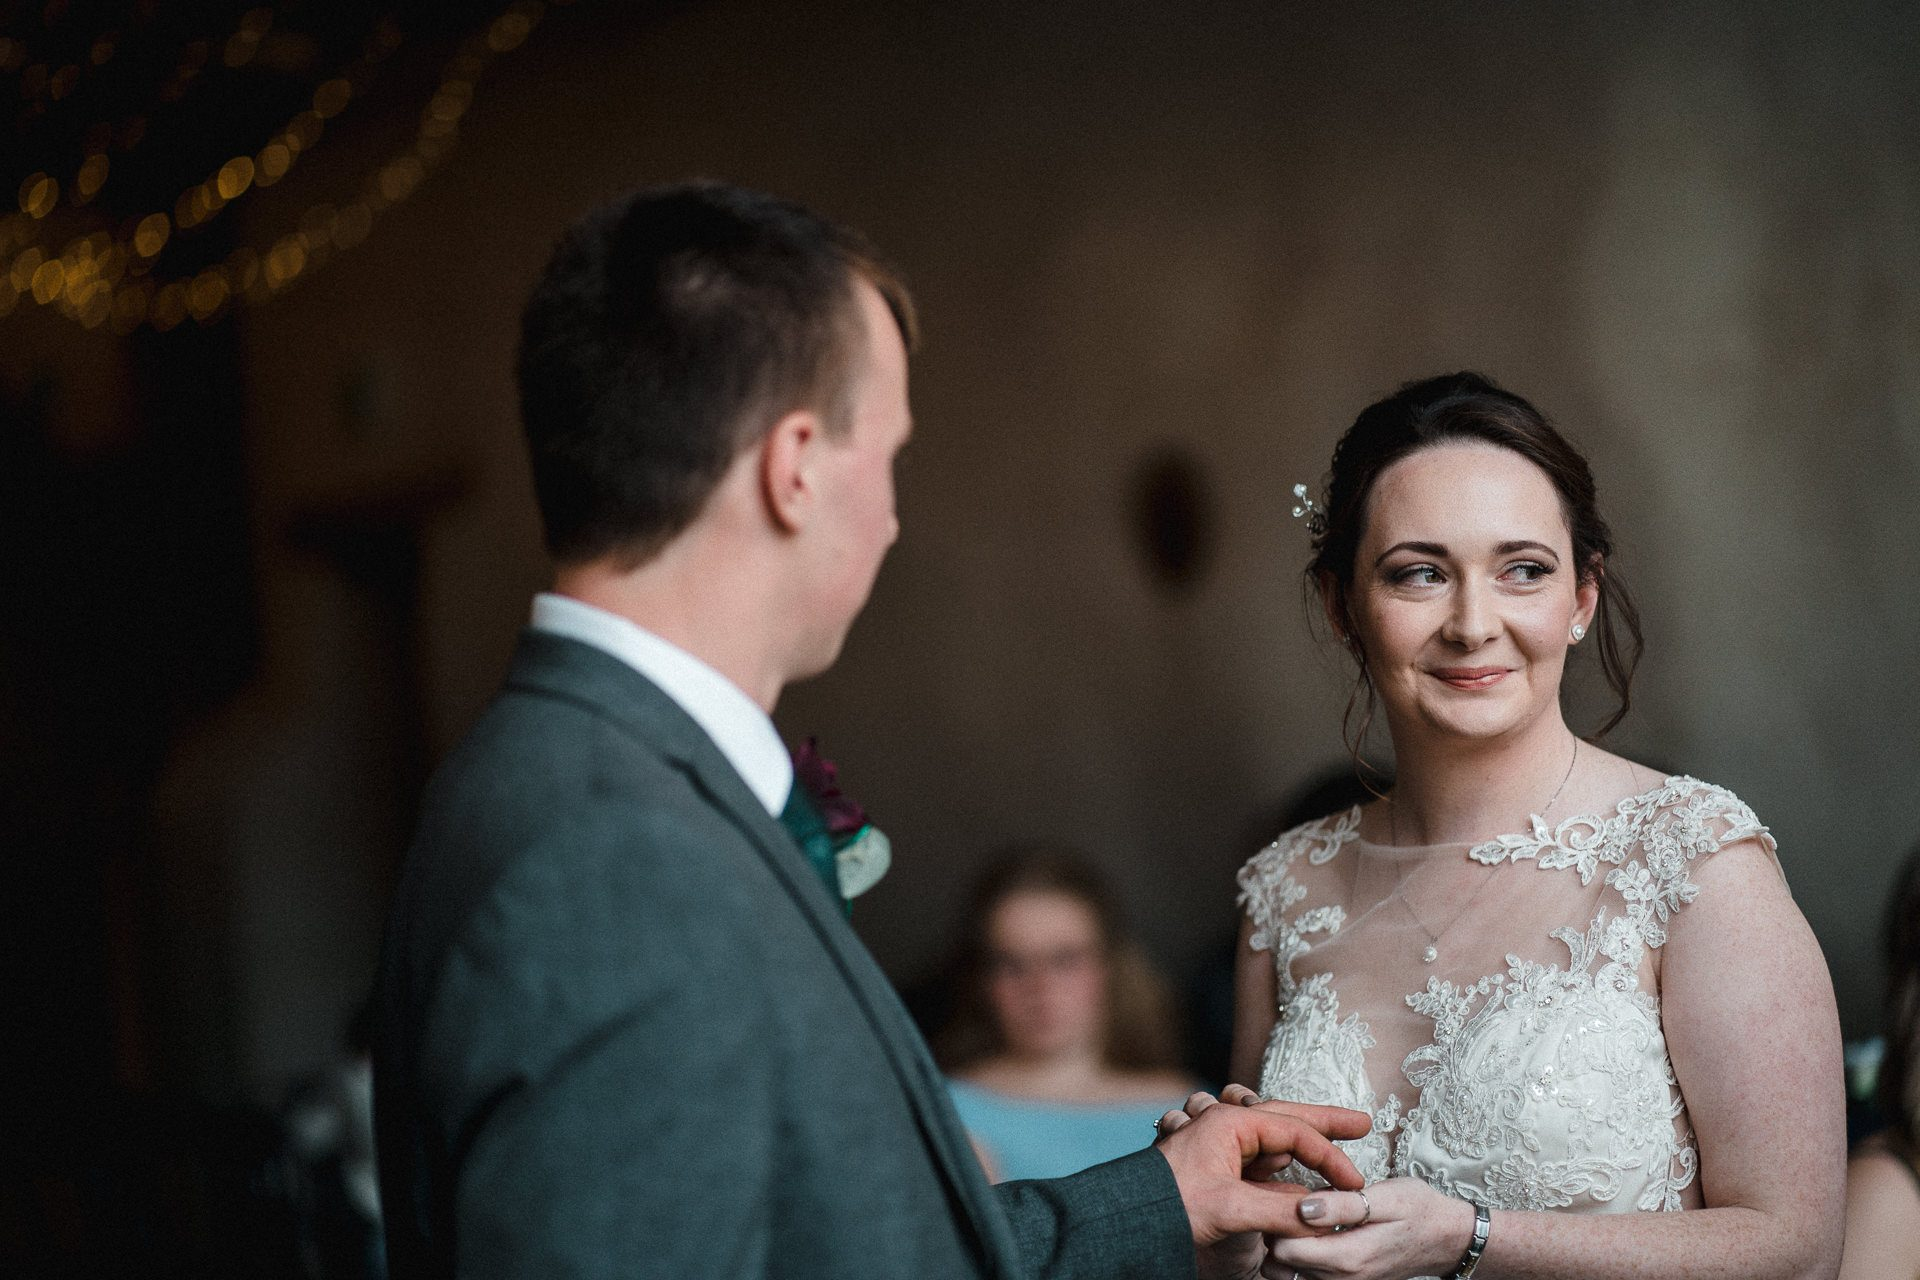 0128-DEVON-SOMERSET-WEDDING-PHOTOGRAPHER-0696-BEST-OF-2019-LOUISE-MAY-DEVON-SOMERSET-WEDDING-PHOTOGRAPHY-20191028-14-42-56-LM205586